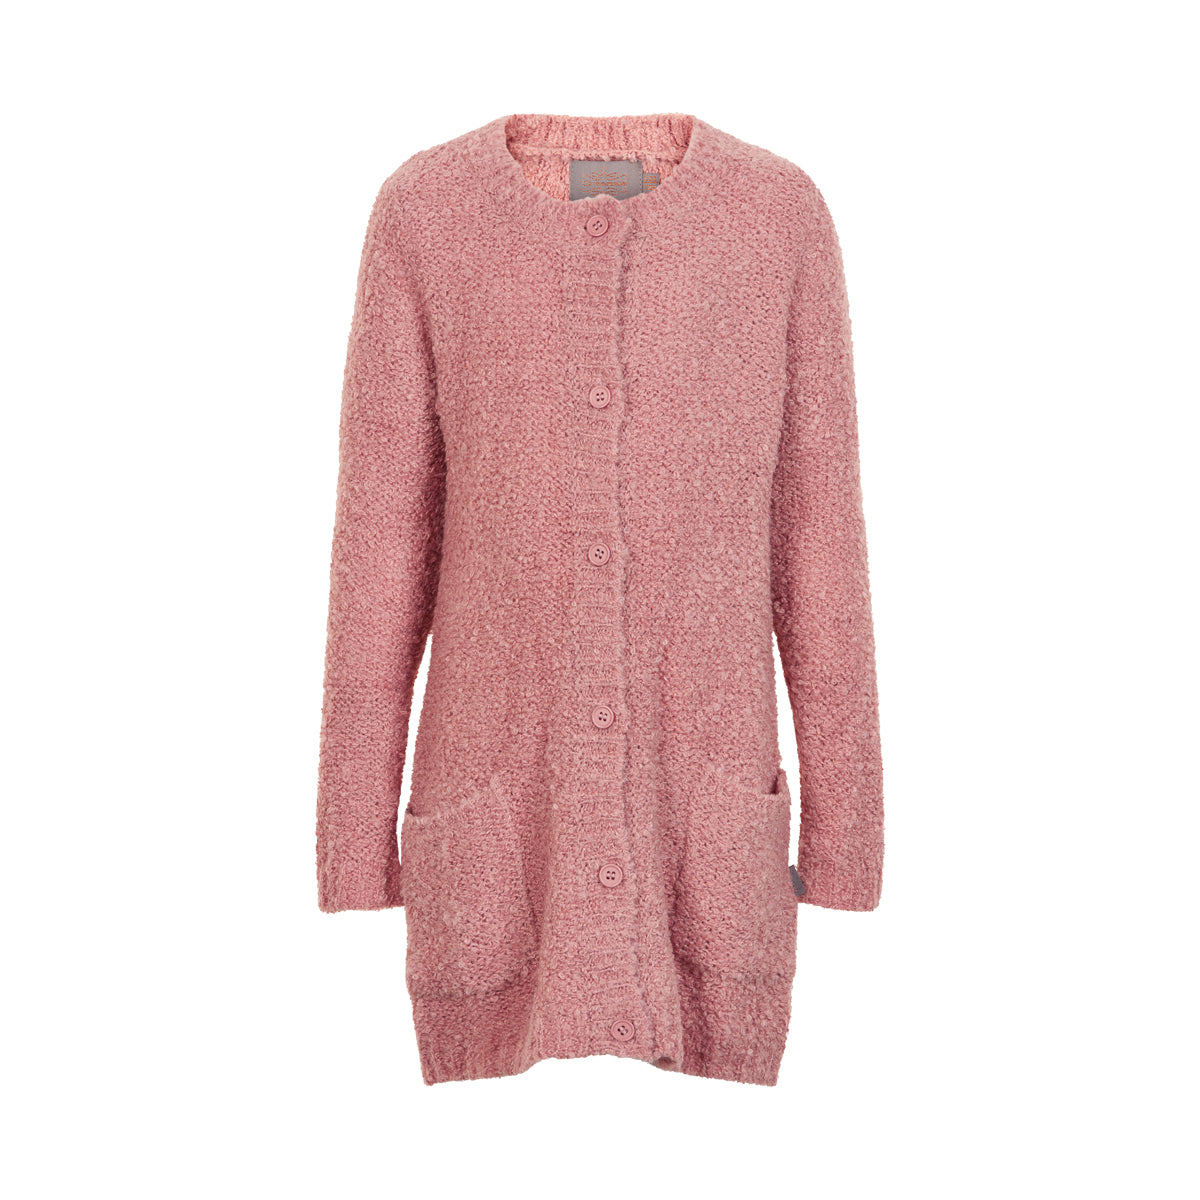 Image of   Creamie - Cardigan Bouclé Knit (820860) - Rose Dusty